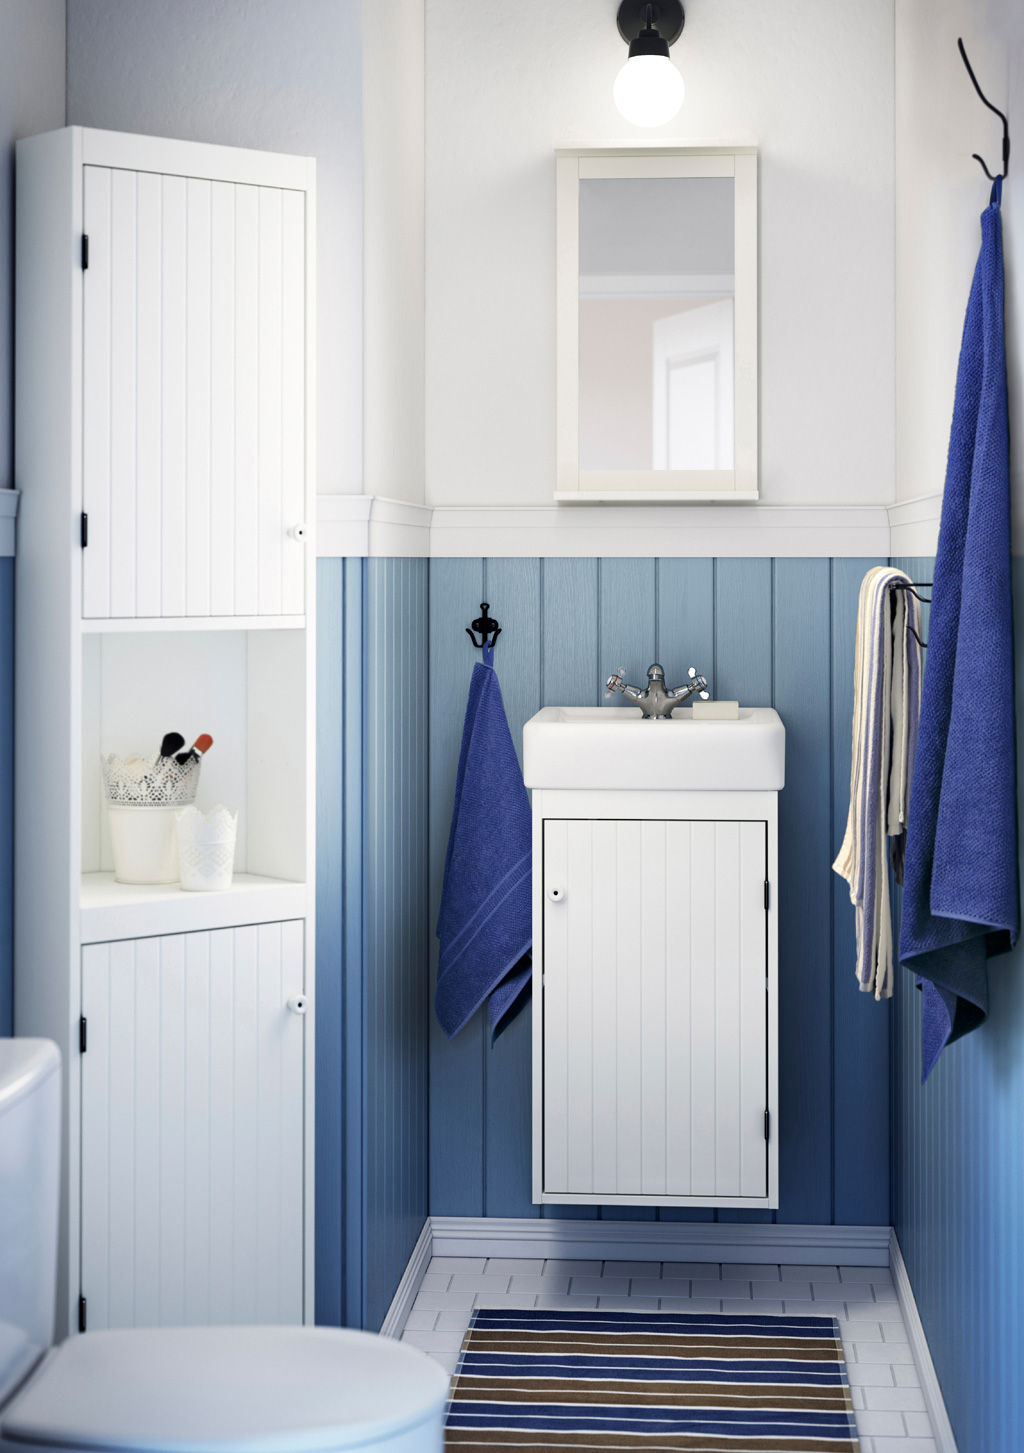 small bathroom with a white wash-basin